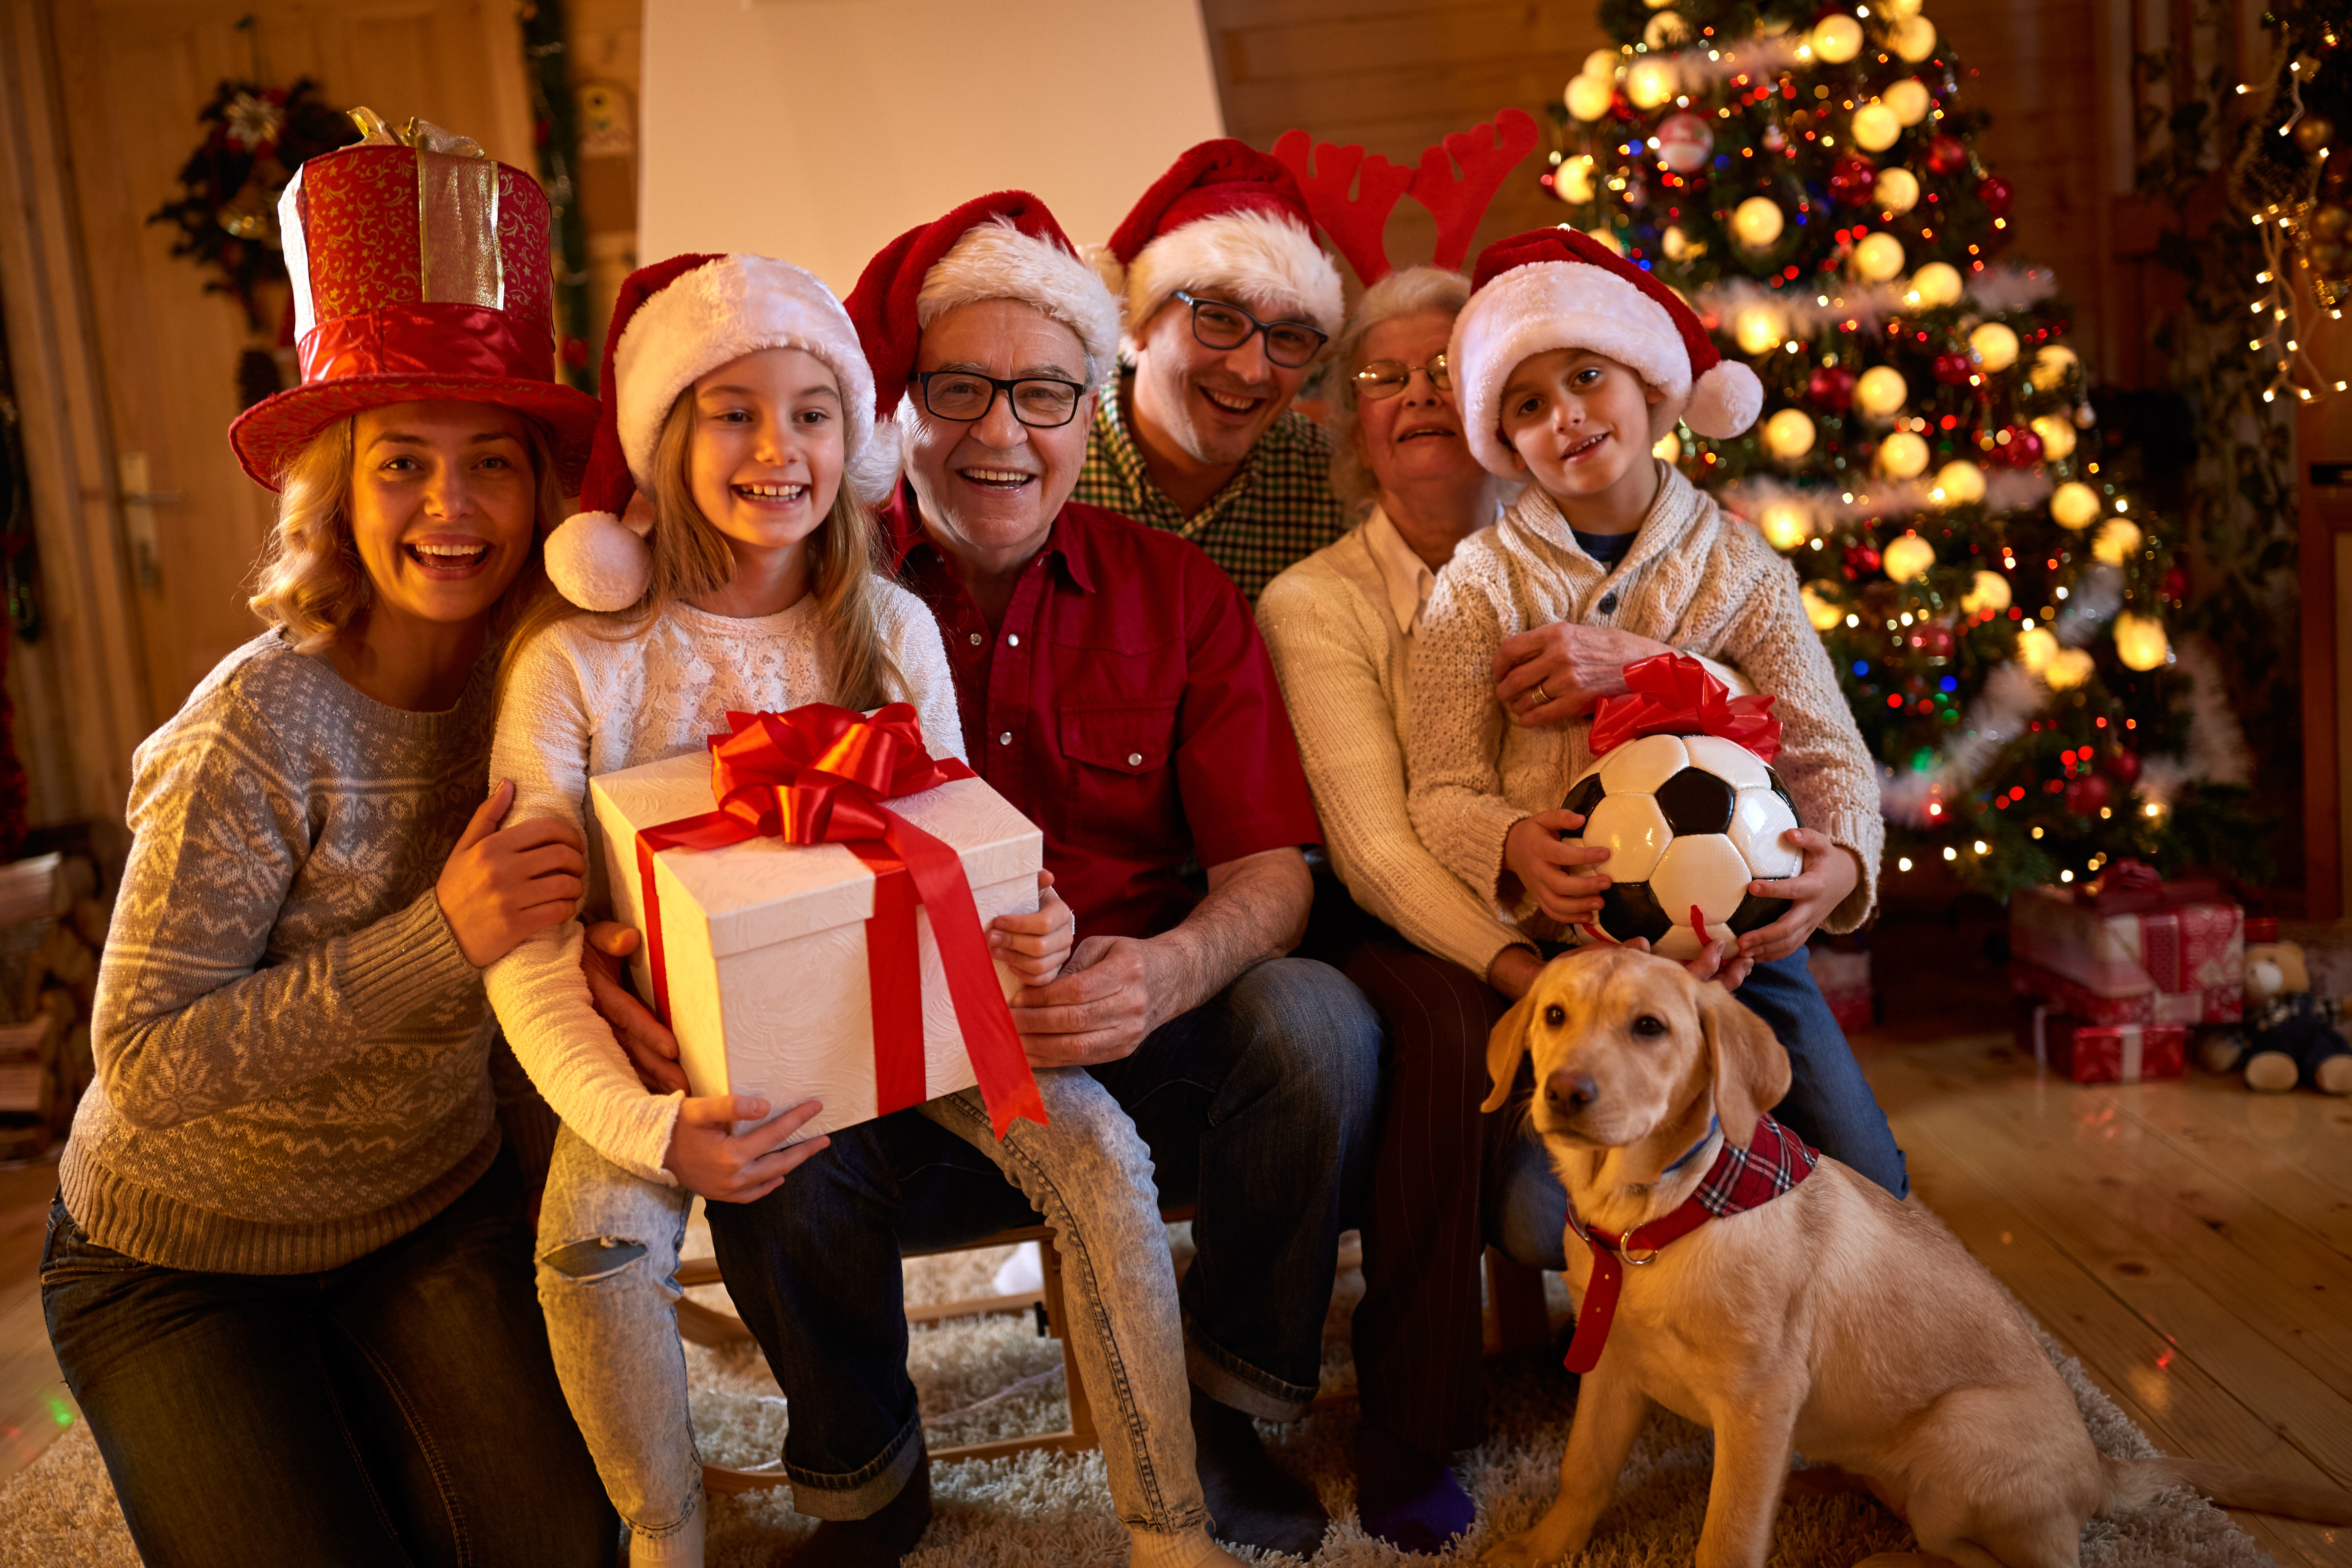 Family Christmas with dog